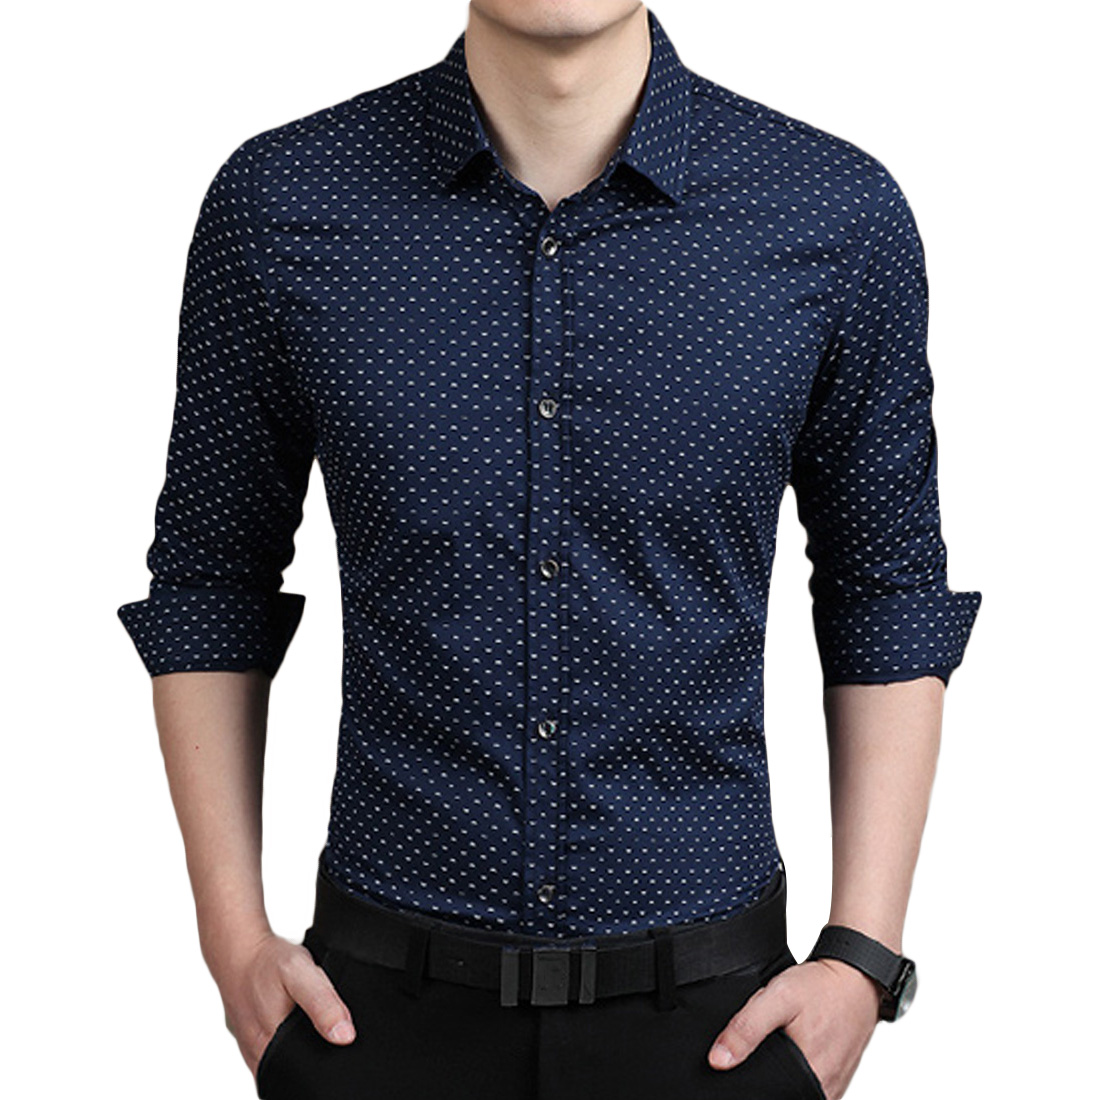 Compare Prices on Red Polka Dot Shirt Men- Online Shopping/Buy Low ...